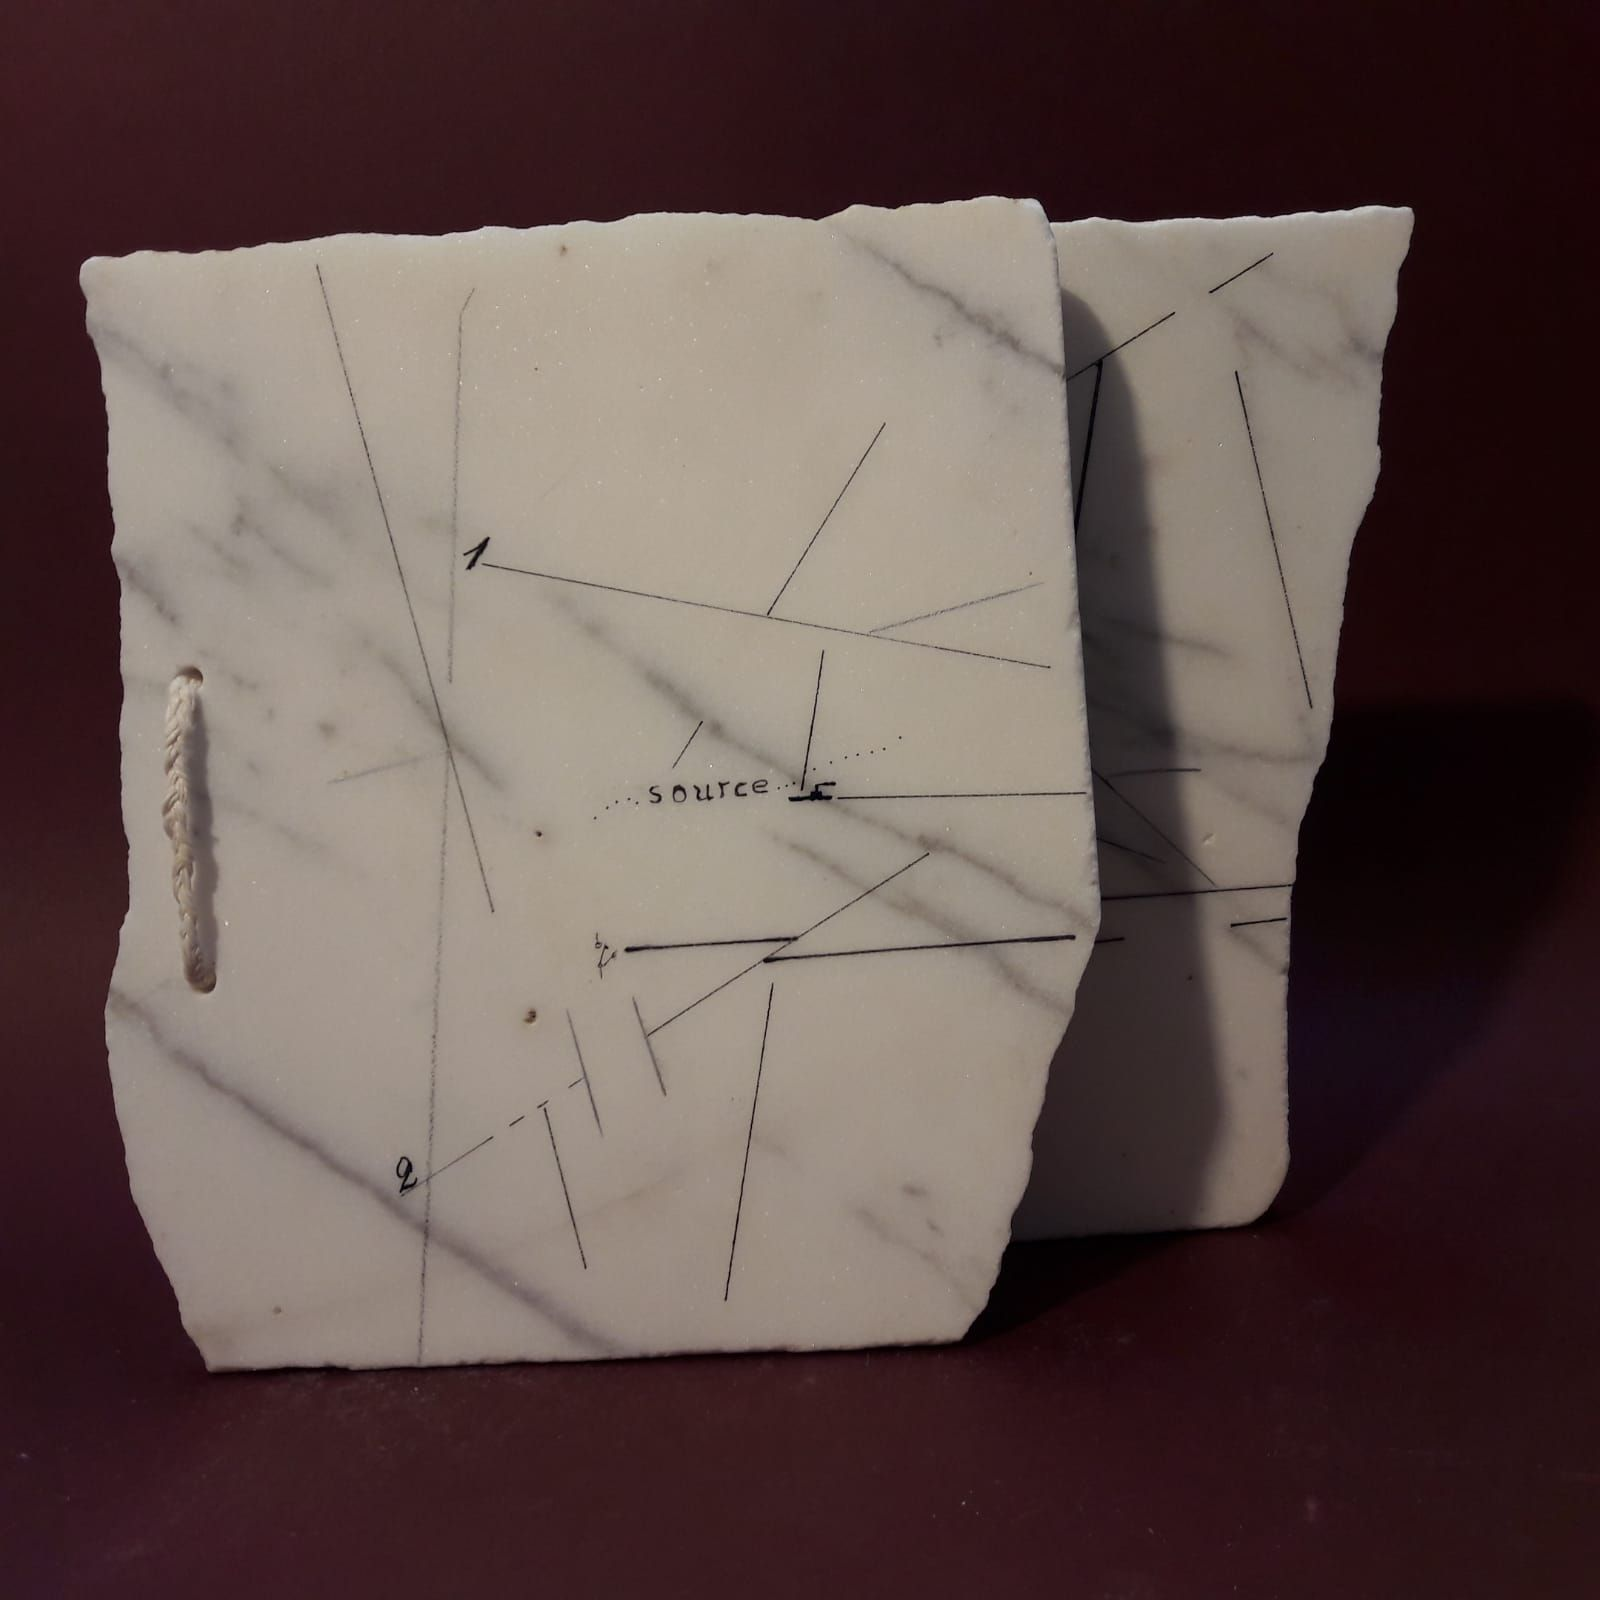 Marie Orensanz. Source, 2015. Drawing and paint on marble, 8 13/16 x 9 7/16 x 9/16 in. (22.5 x 24 x 1.5 cm.)